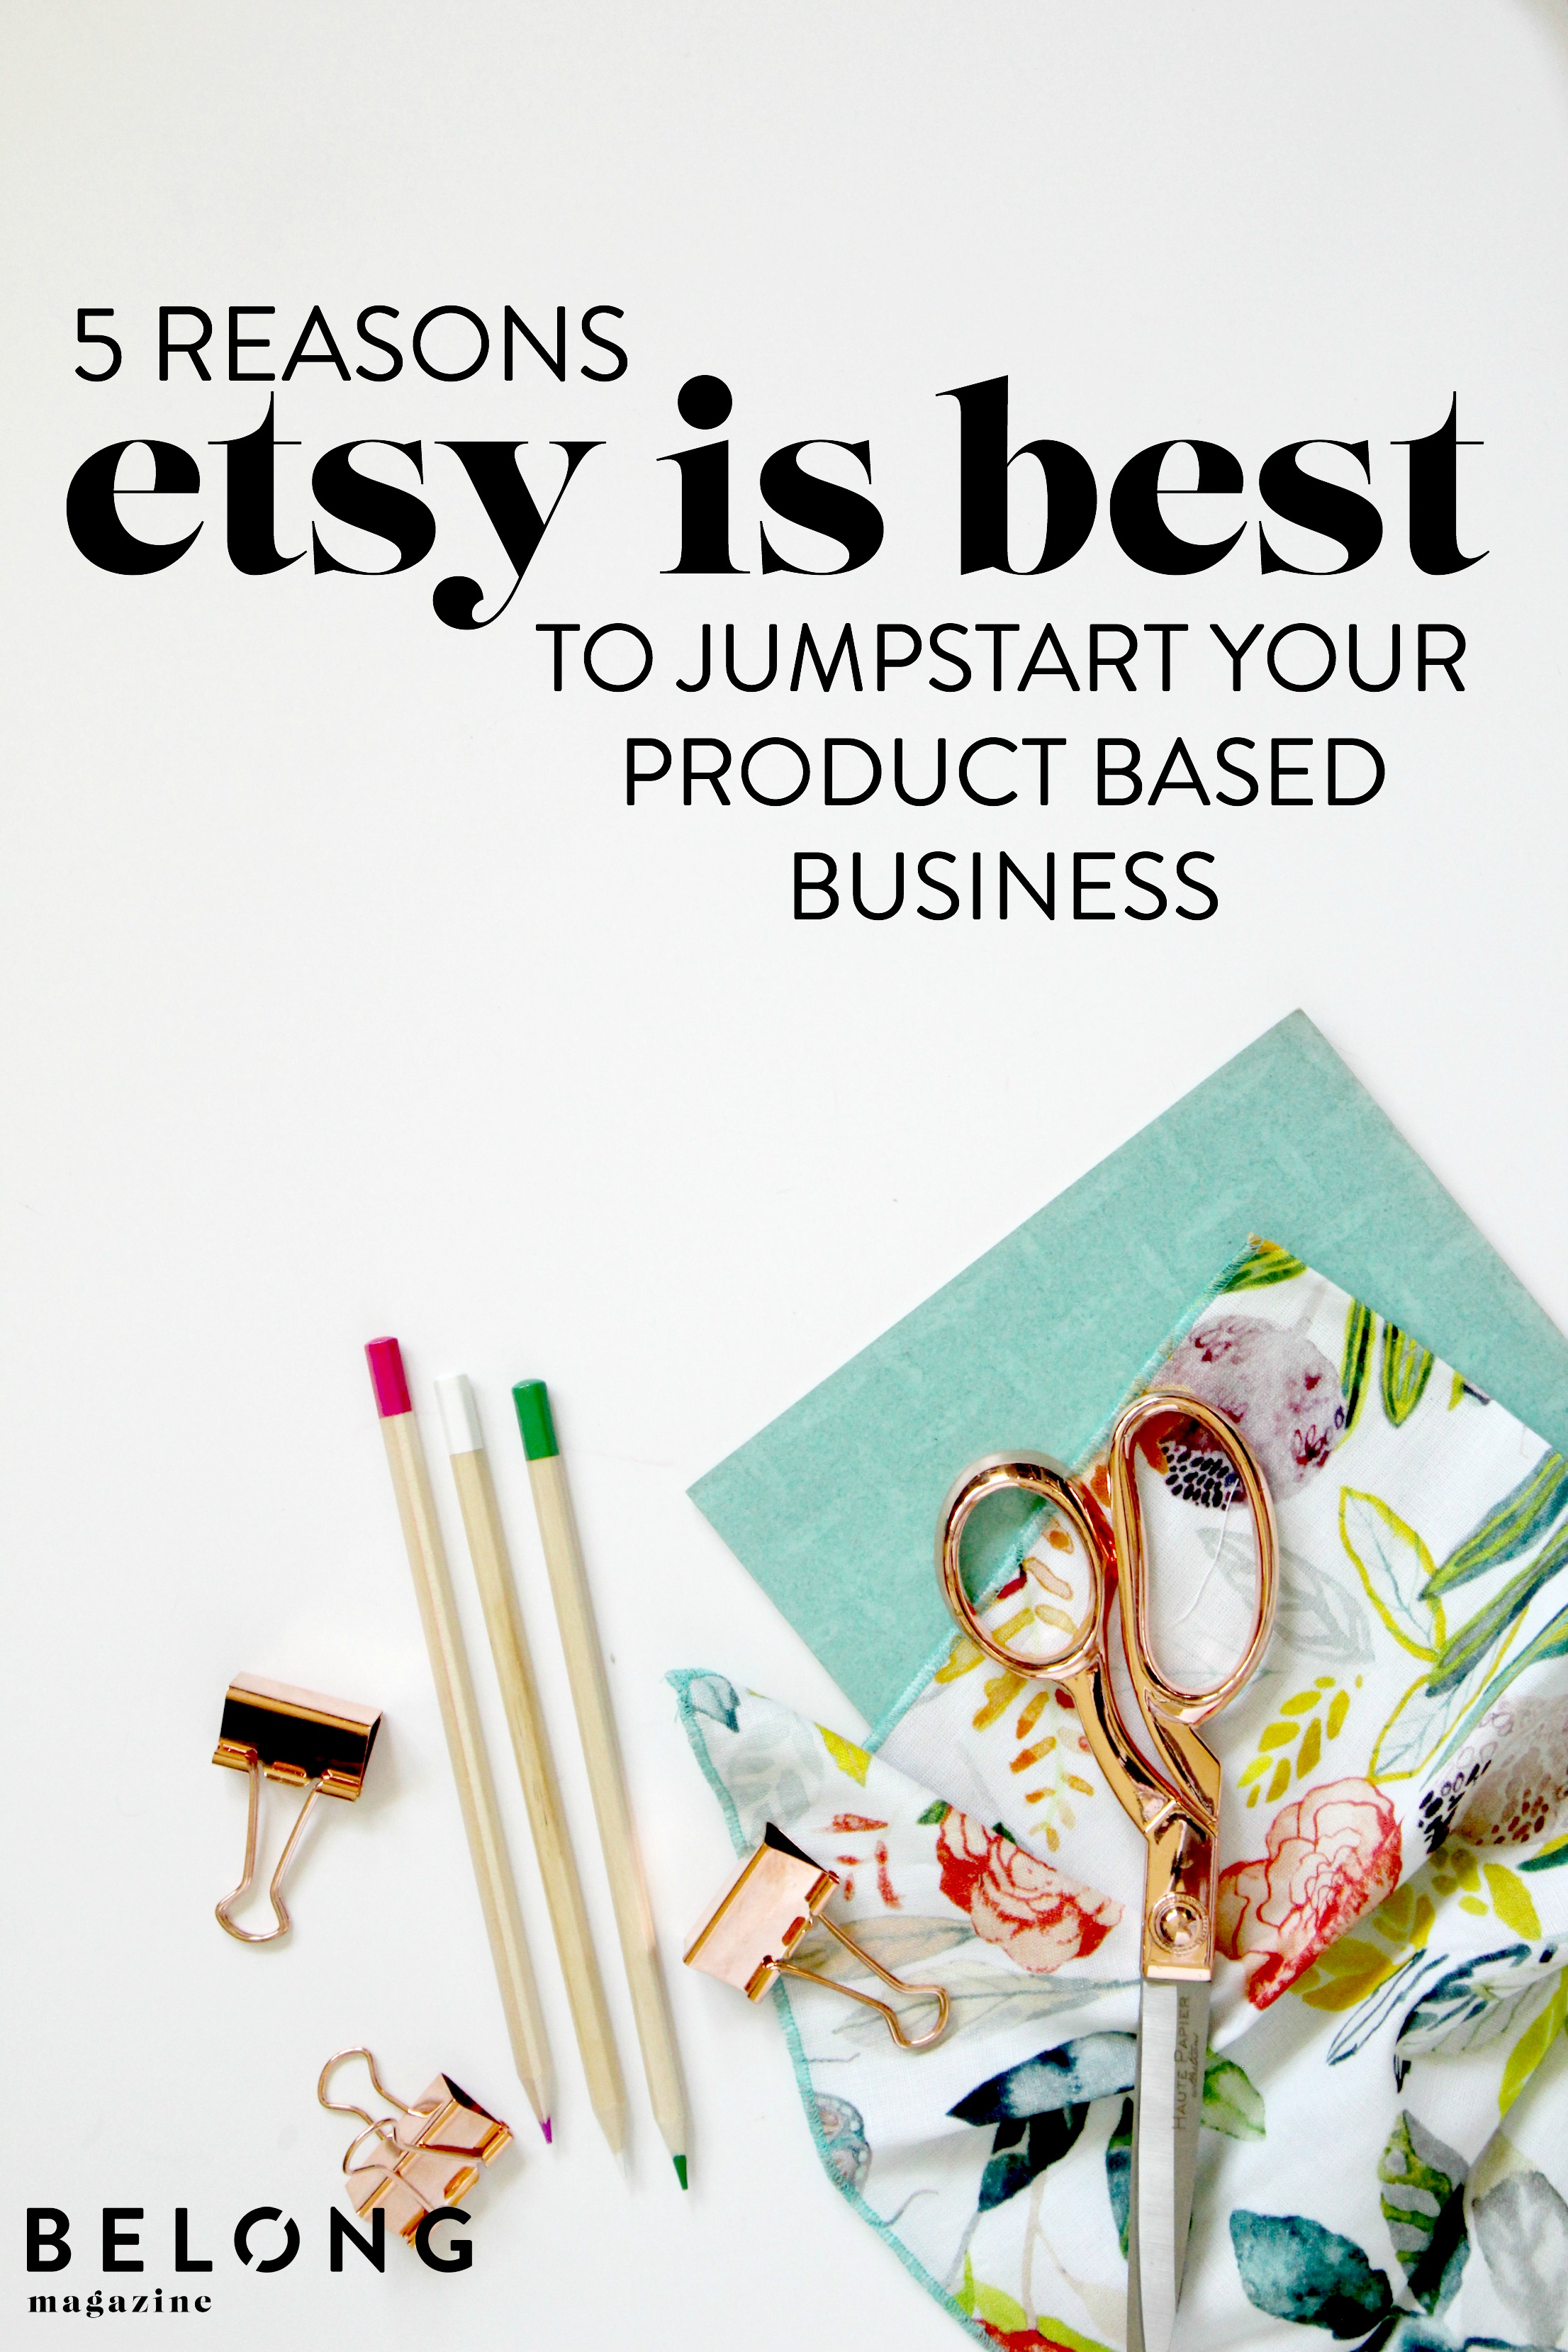 five reasons why etsy is still the best option for jumpstarting your product based business - belong magazine blog - guest post by Kelly Parker Smith of Hello World Paper Co.